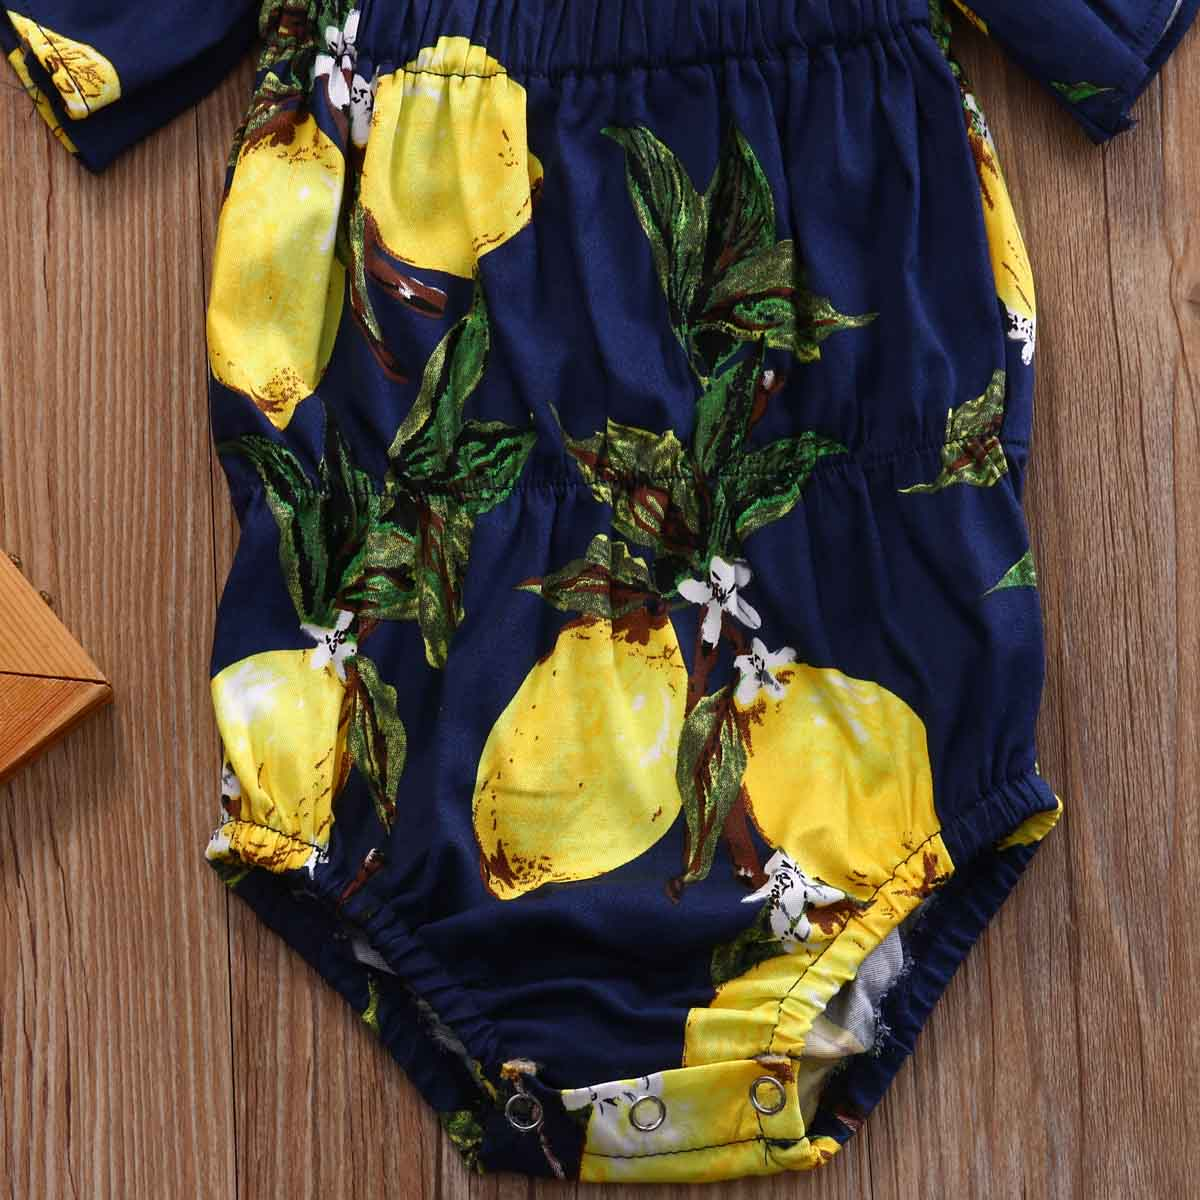 Cute-Newborn-Baby-Girl-Clothes-2017-Summer-Off-shoulder-Pear-Printed-Toddler-Kids-Jumpsuit-Headband-Outfits-Sunsuit-Clothing-5